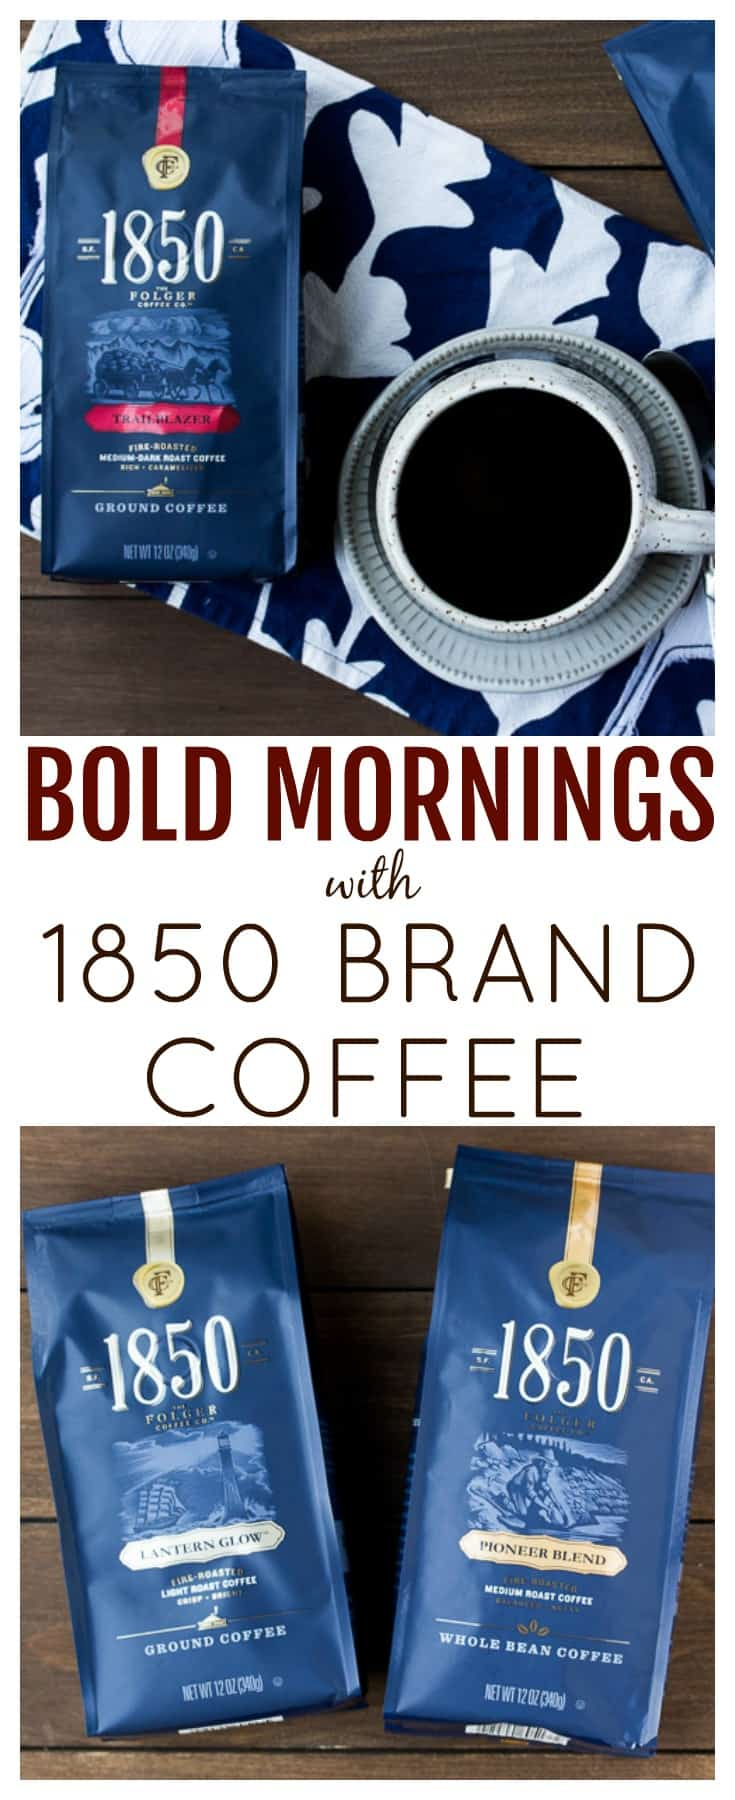 1850 Brand Coffee is the perfect way to start your mornings when you love to live boldly! 1850 Brand Coffee is a premium coffee from Folgers. It comes in 4 varieties that you can buy at Target! | #ad #1850Coffee #1850CoffeeatTarget #PMedia #coffee